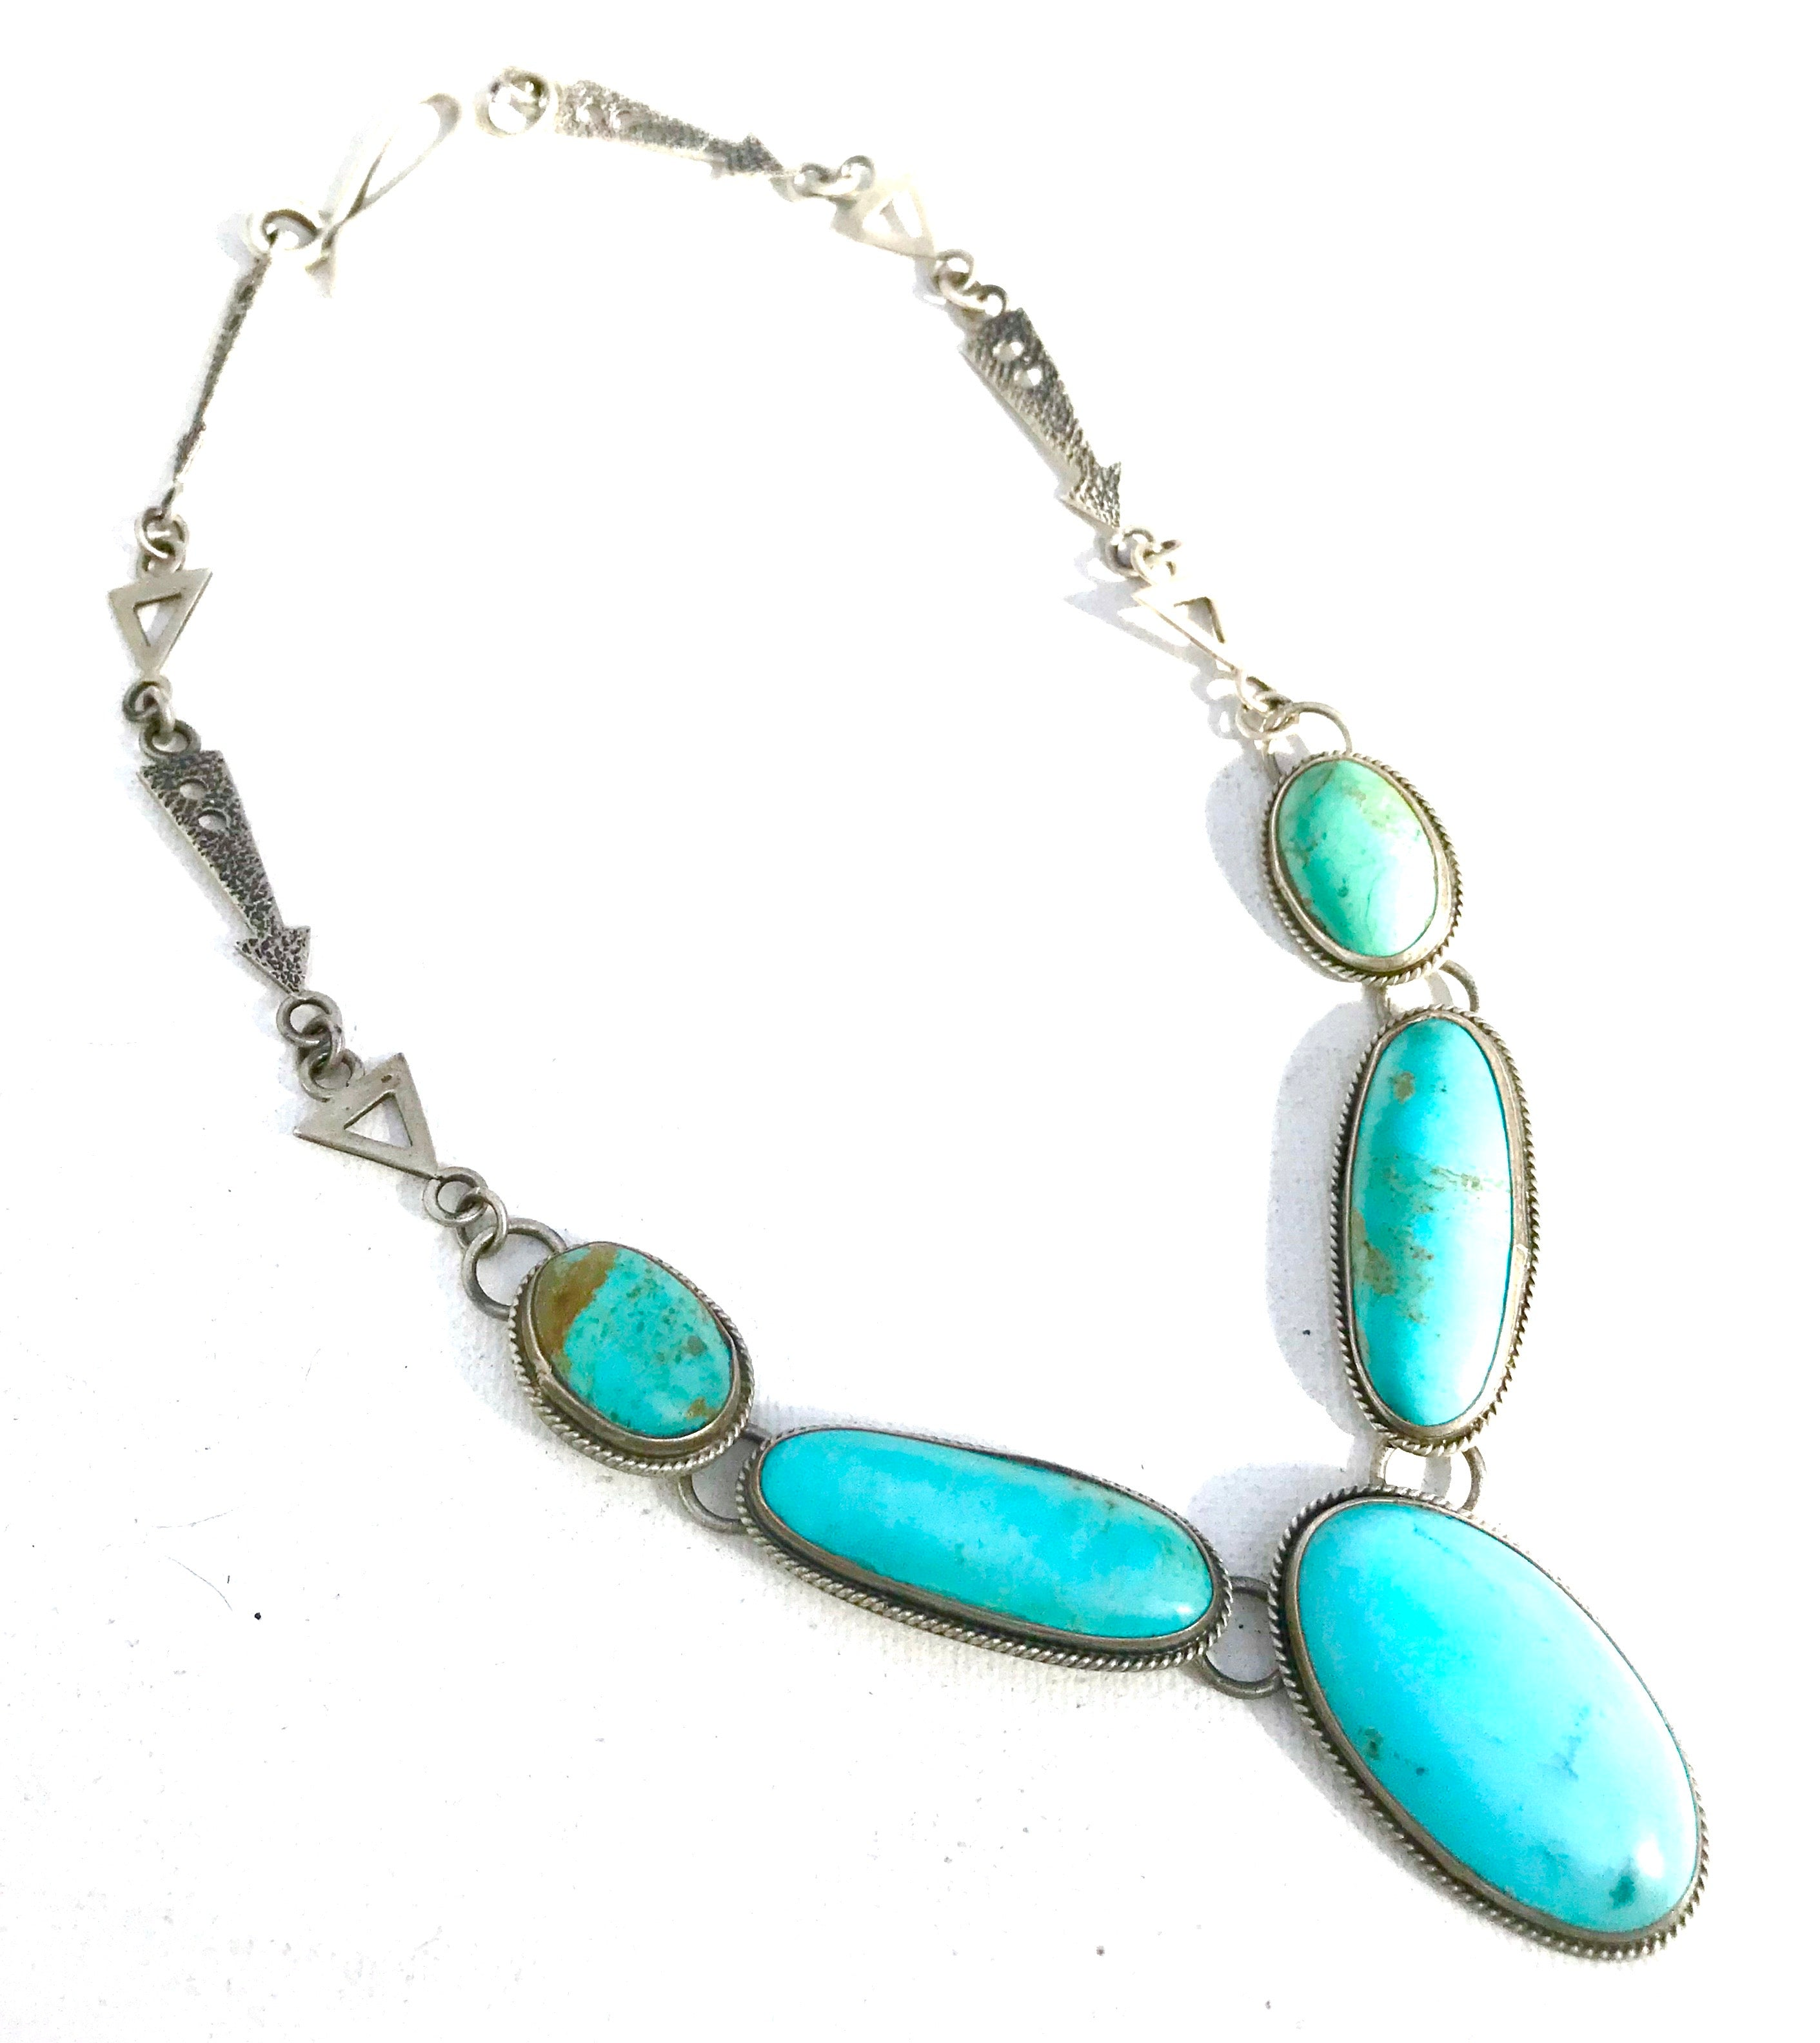 Navajo heavy gauge silver turquoise necklace